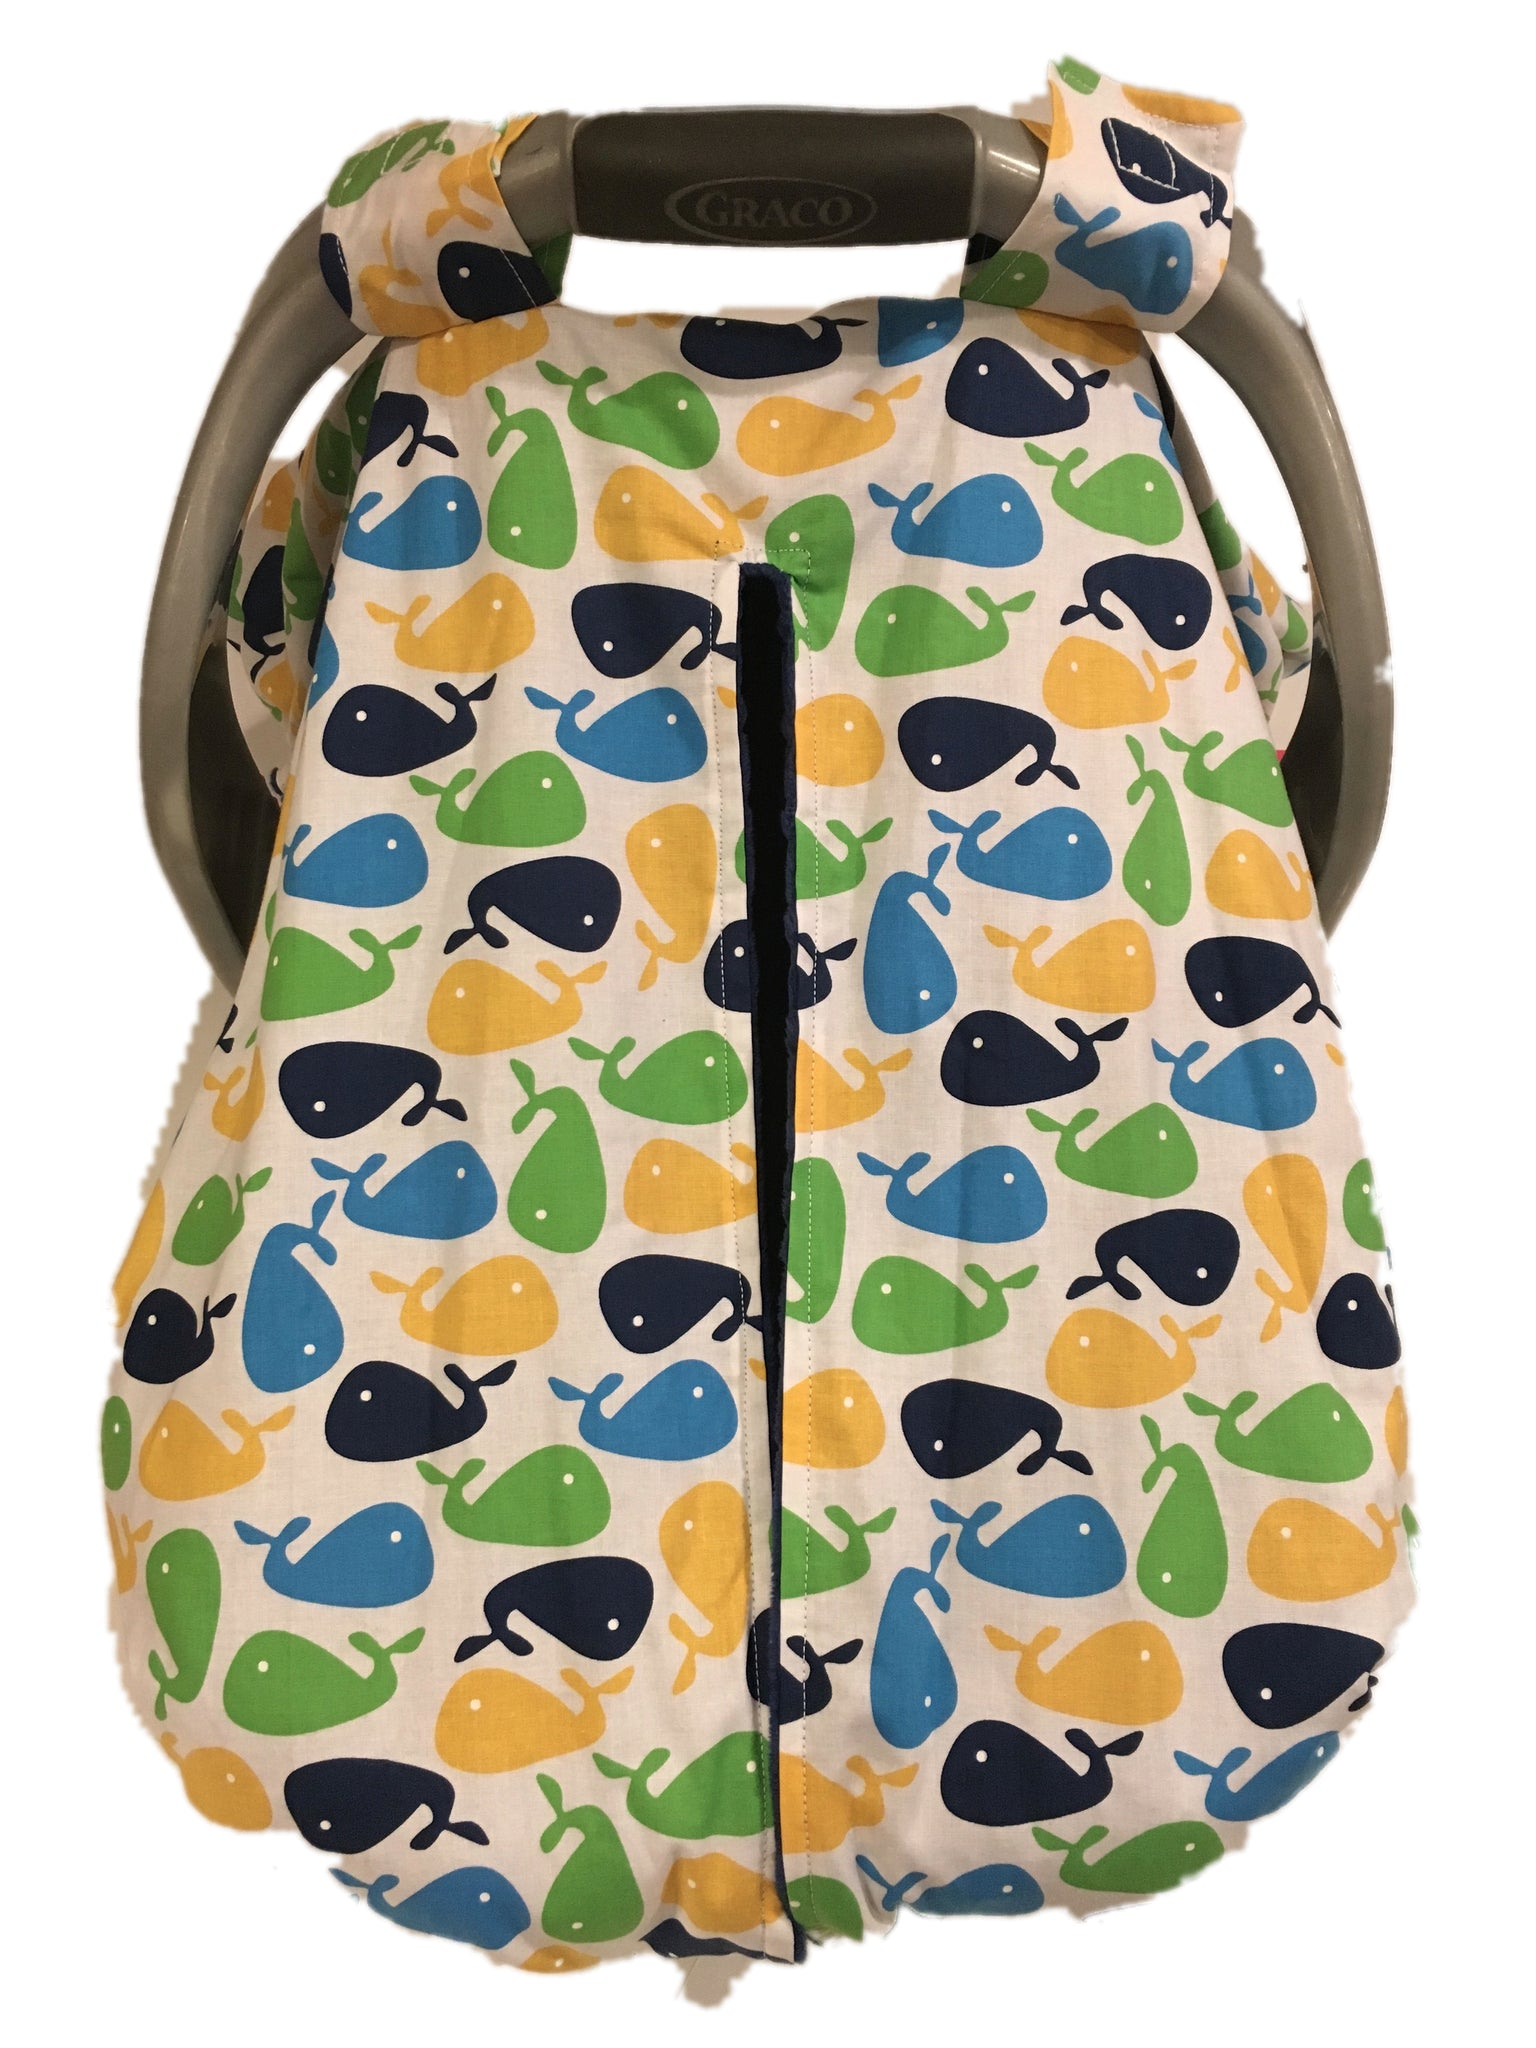 Whales Car Seat Kover with navy Blue Minky Interior